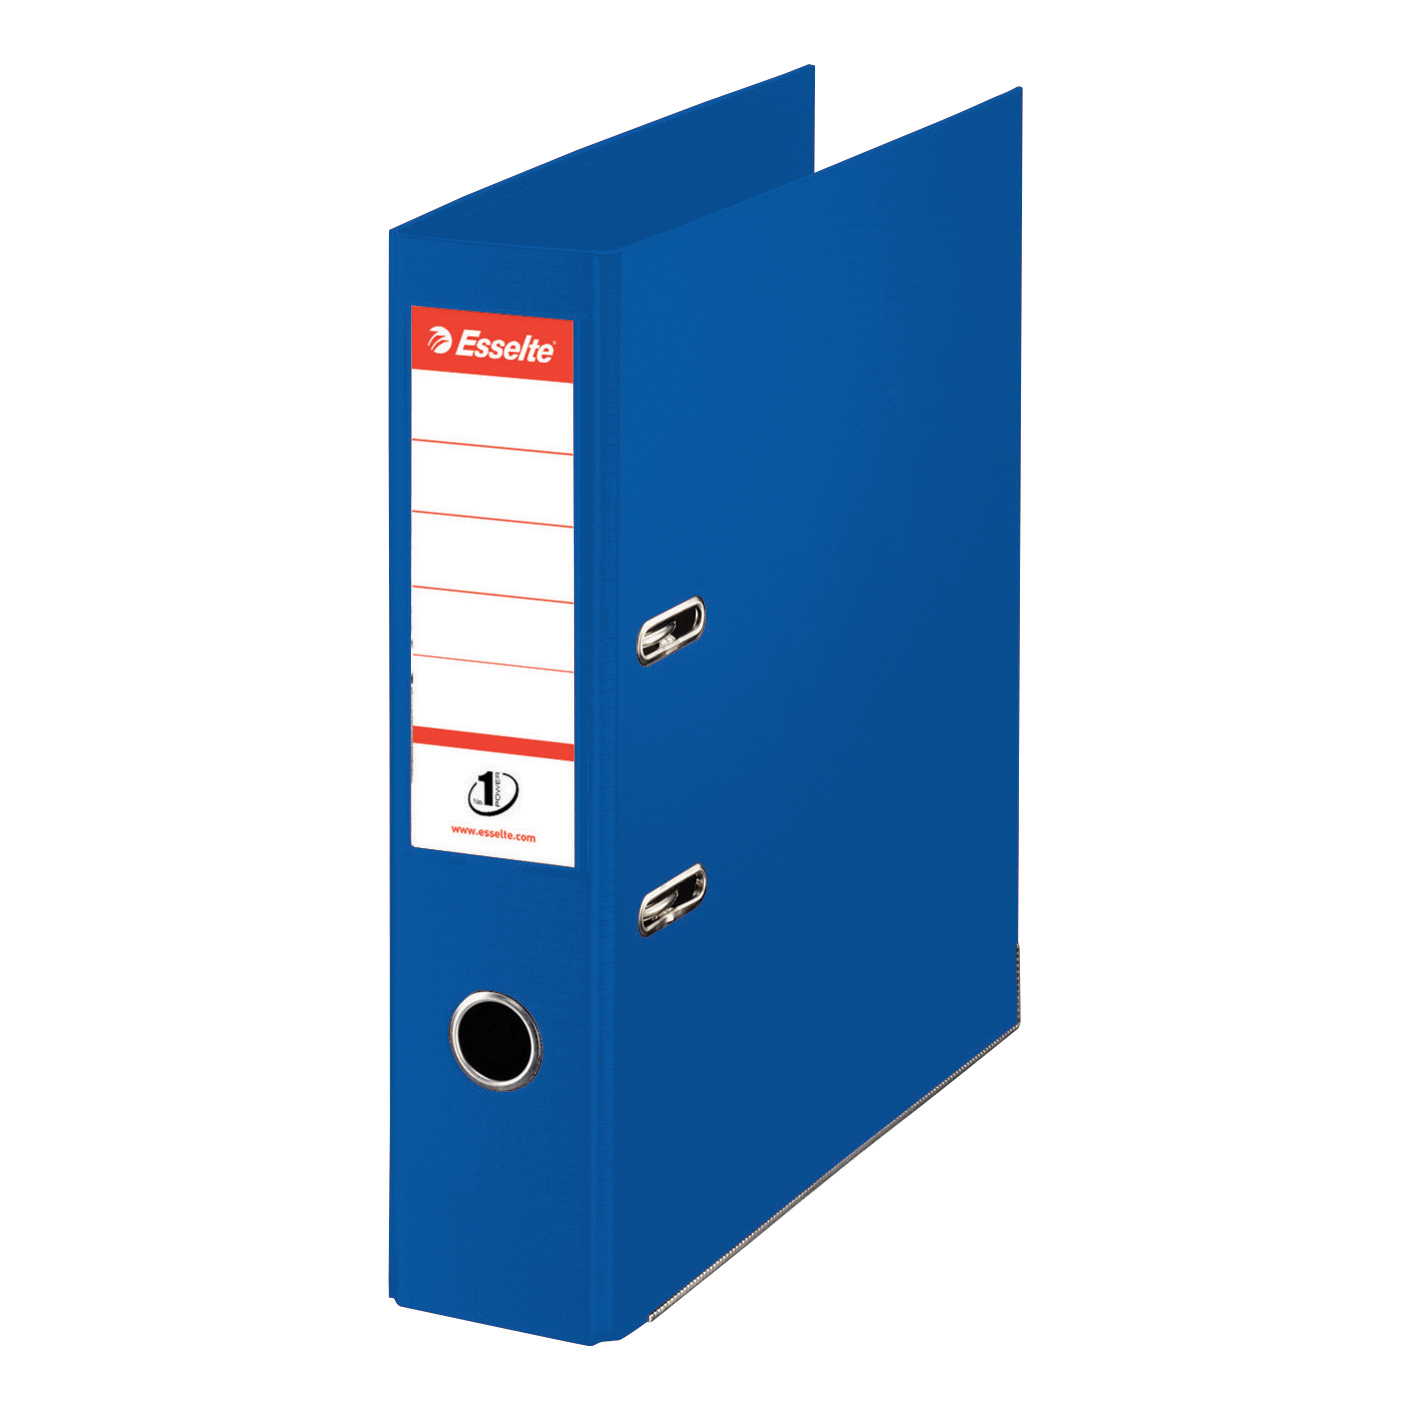 Esselte No. 1 Power Mini Lever Arch File PP Slotted 50mm Spine A4 Blue Ref 811450 [Pack 10]